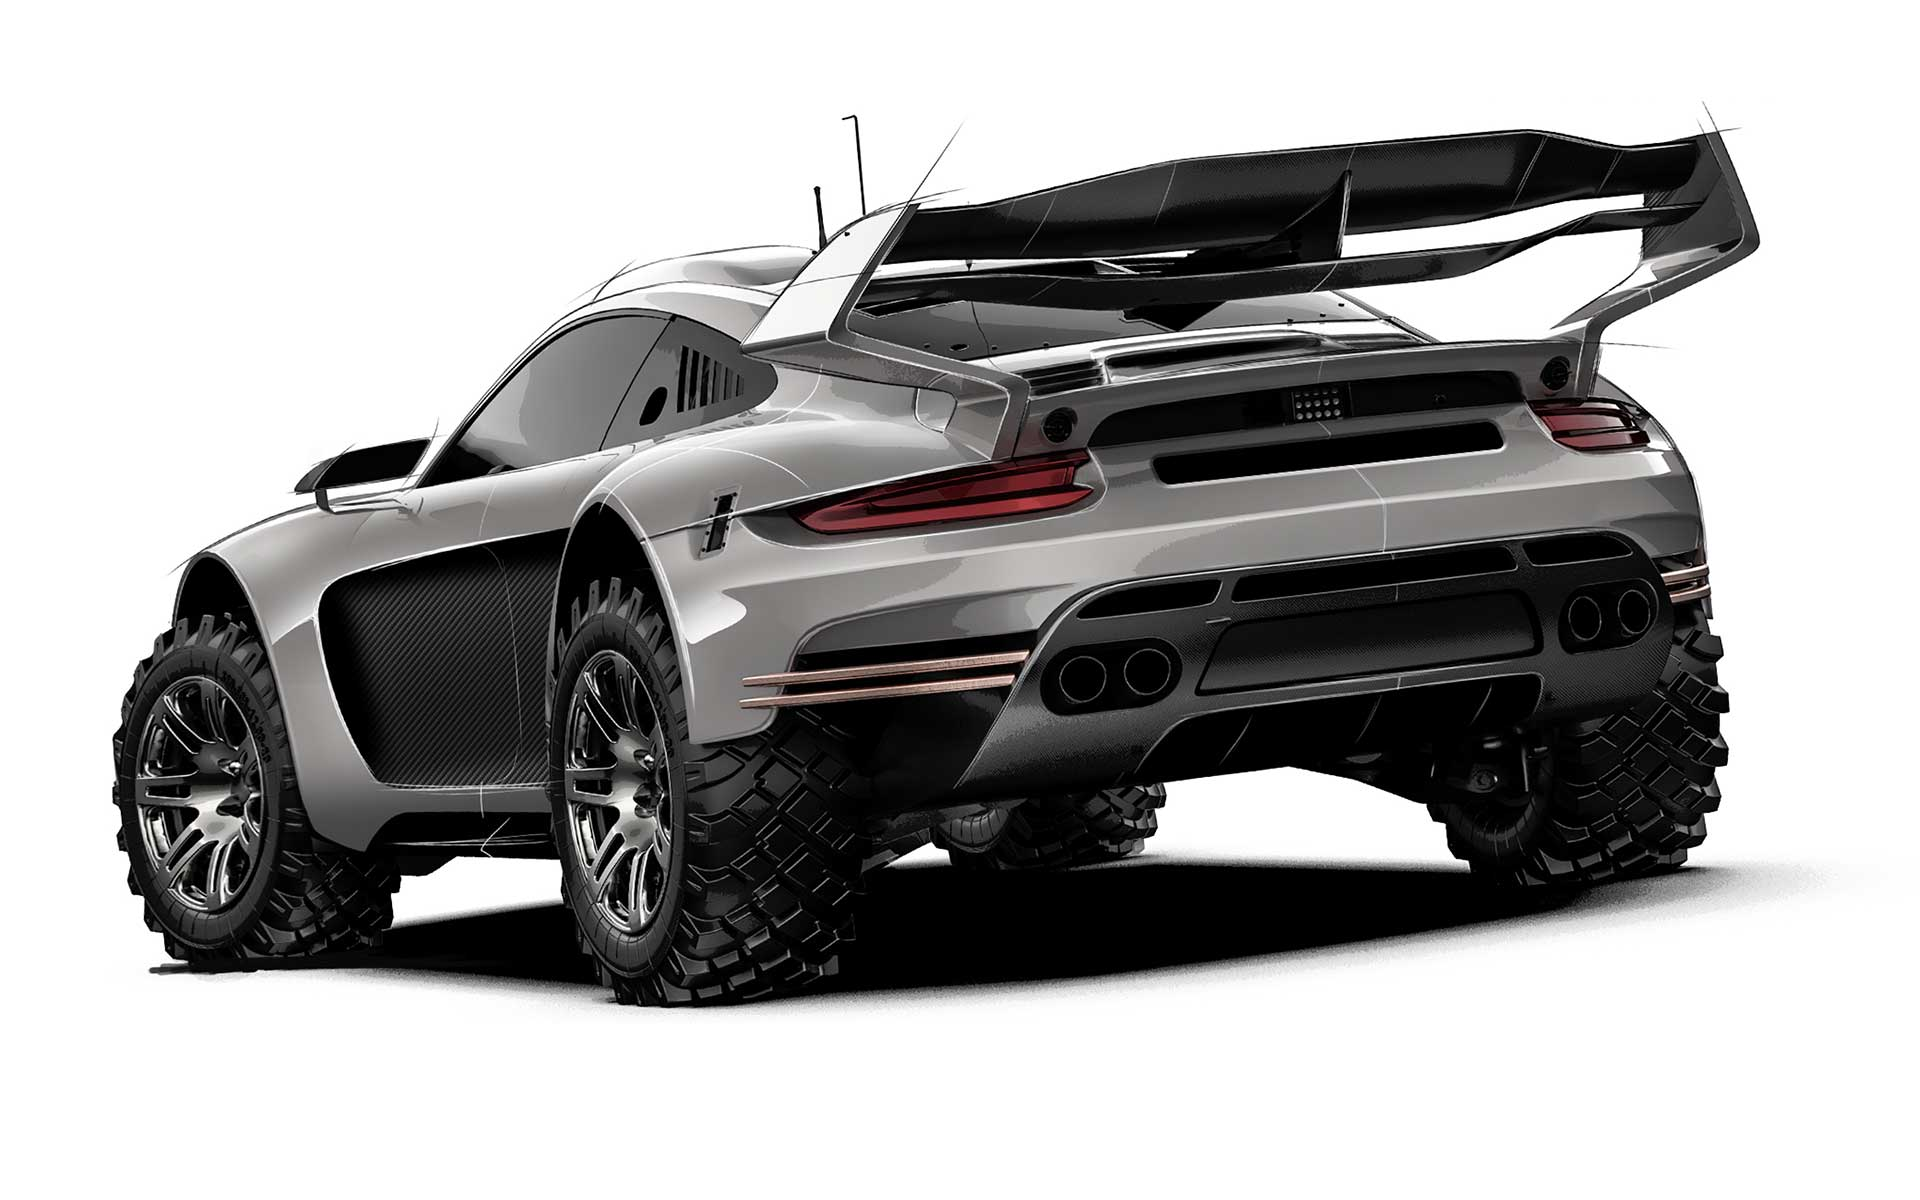 Gemballa Avalanche 4x4 off roader rear